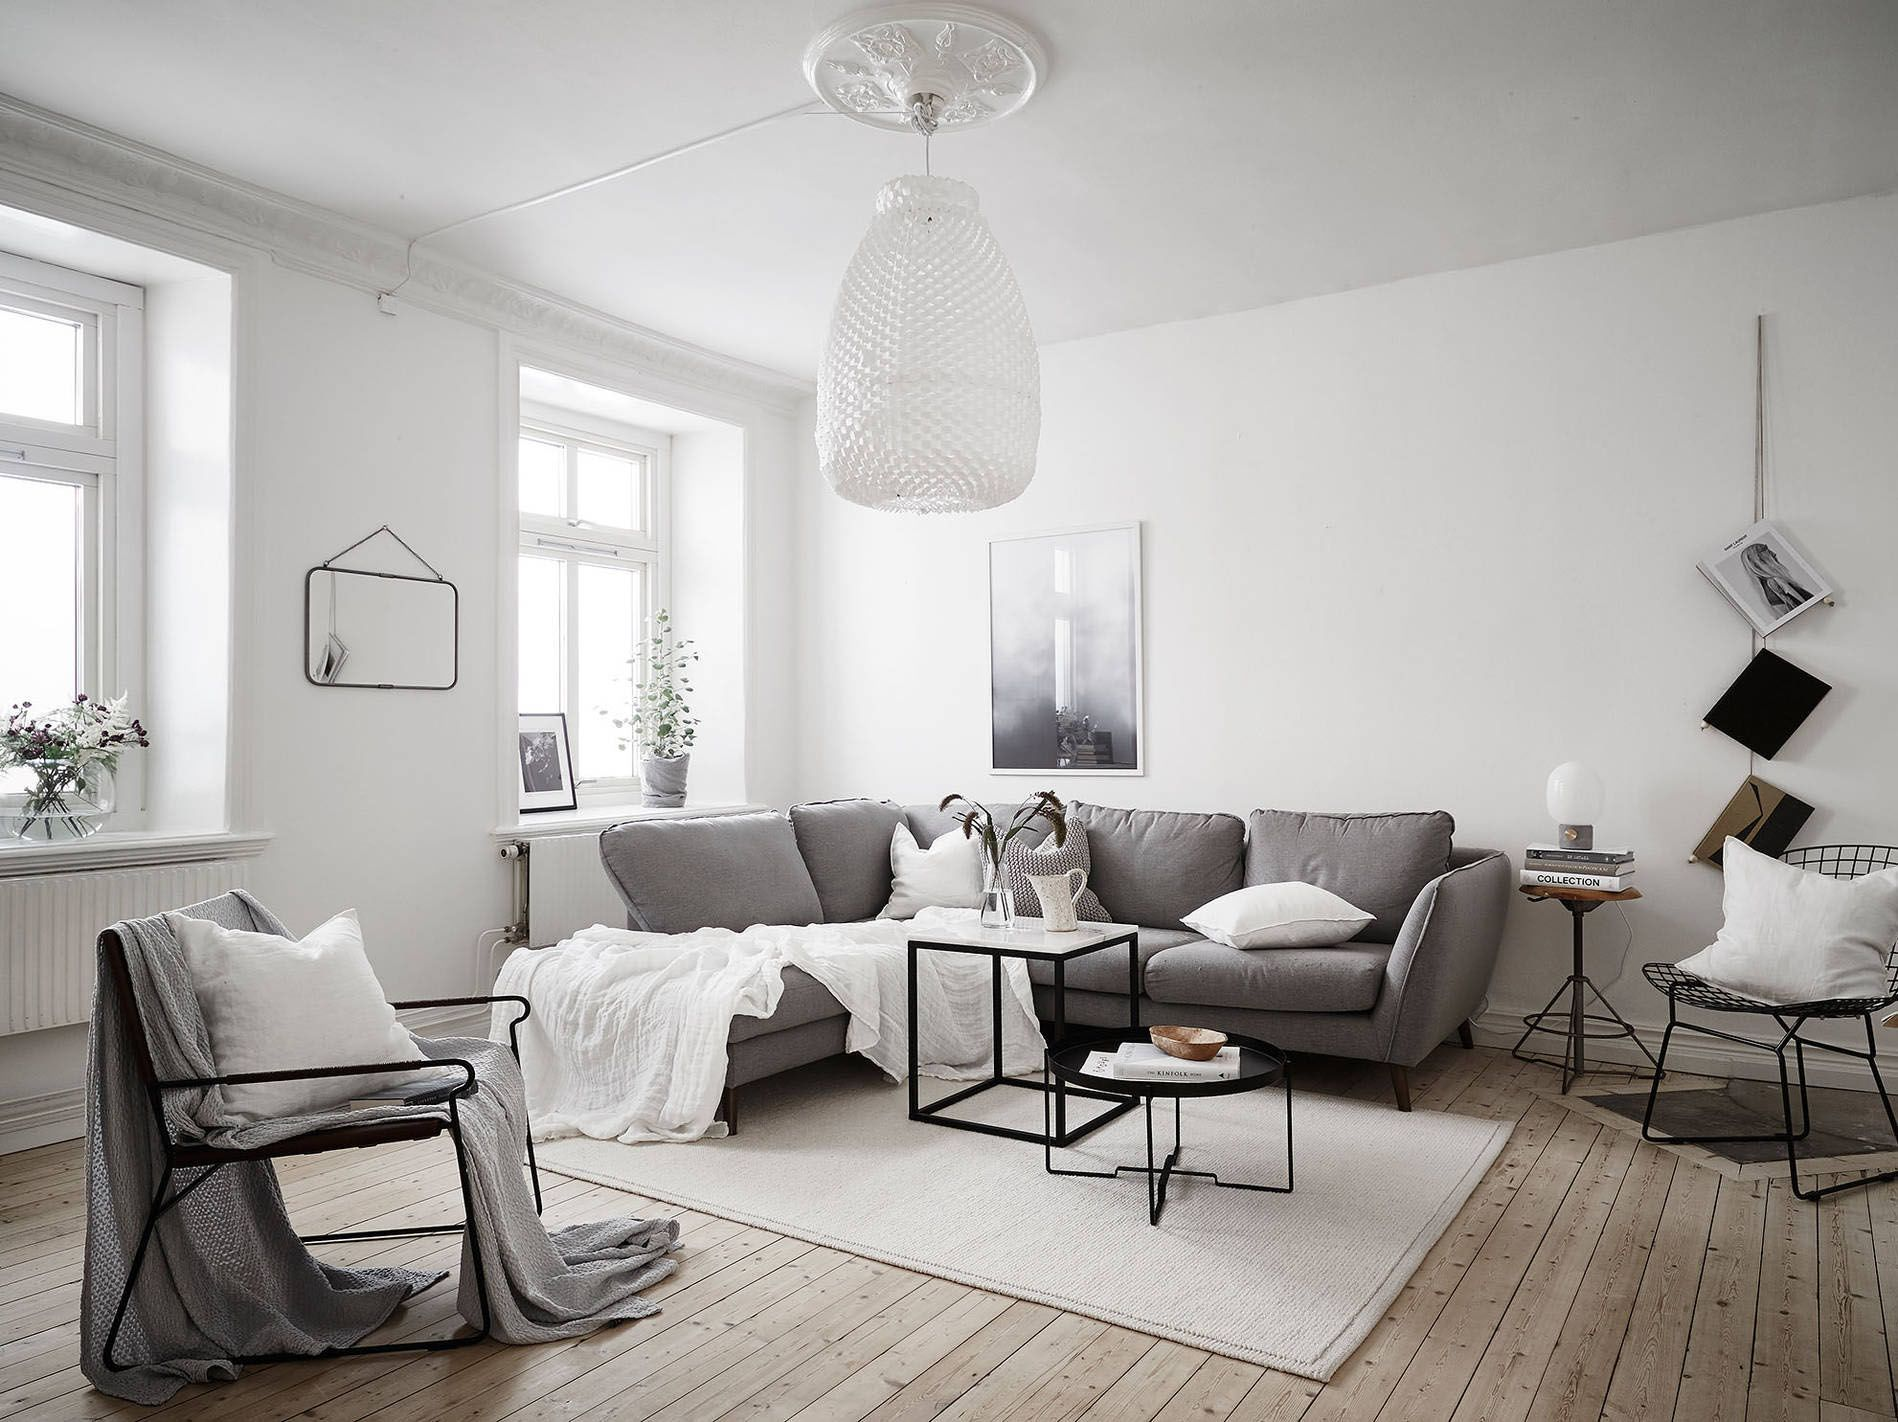 Scandinavian Living Room With Large Pendant Lamp   Top 10 Tips For Adding  Scandinavian Style To Part 36